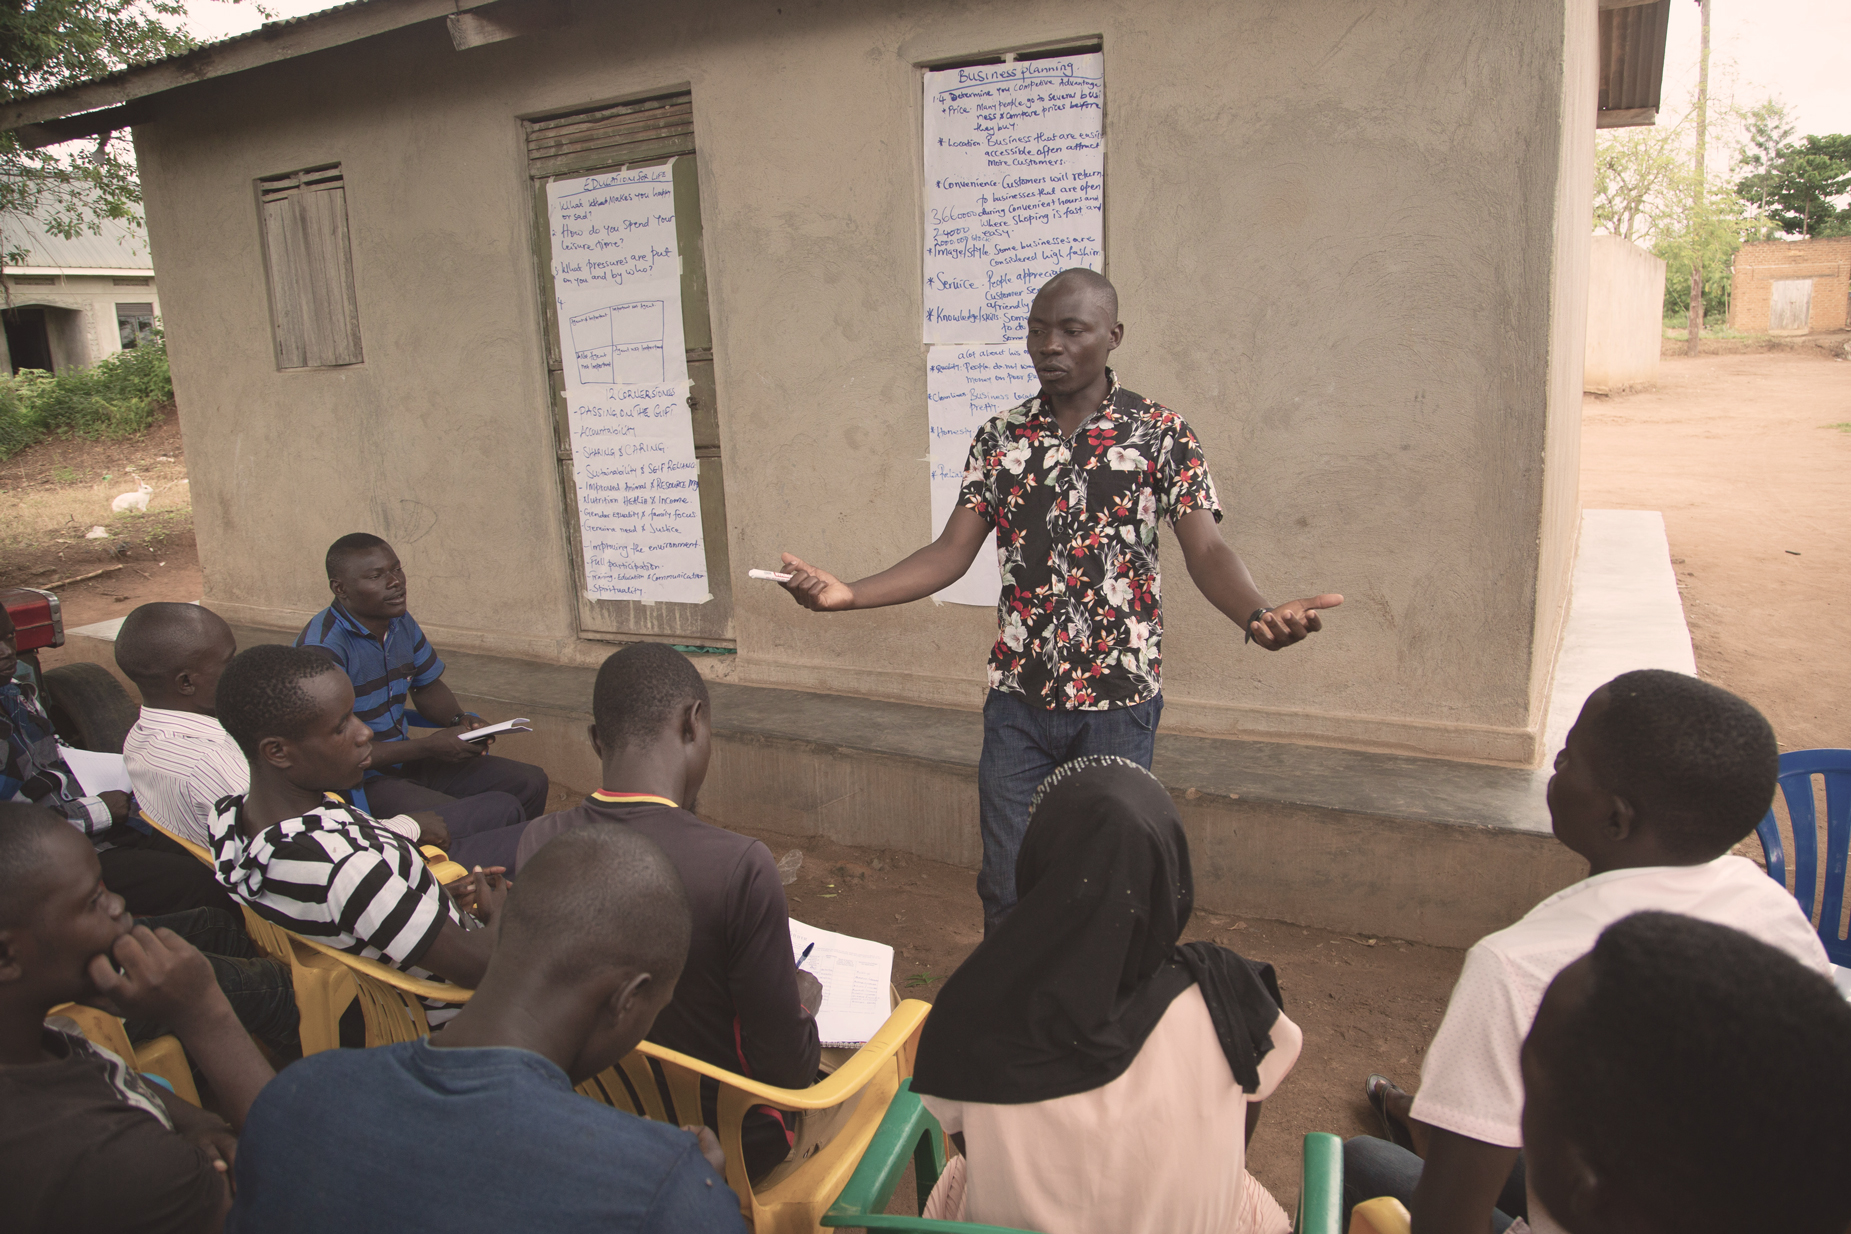 A young man in a Hawaiian shirt addresses members of the East Africa Youth Inclusion Project, who sit in plastic chairs in front of a small building with big pieces of paper taped to it that has notes about business development.